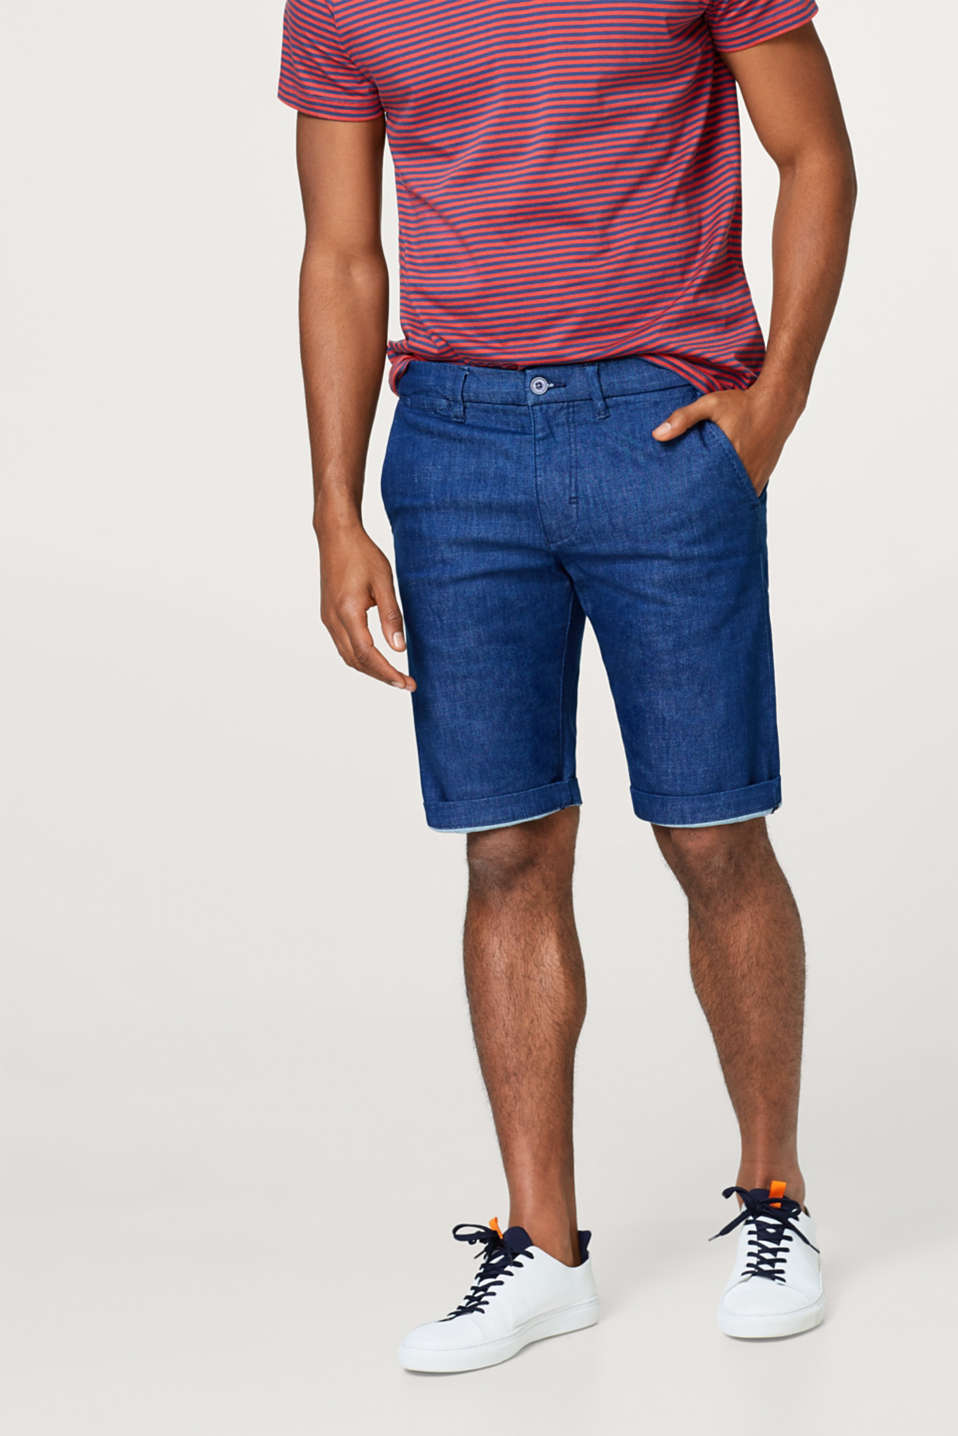 Esprit - Super stretch denim shorts with a sleek dye effect